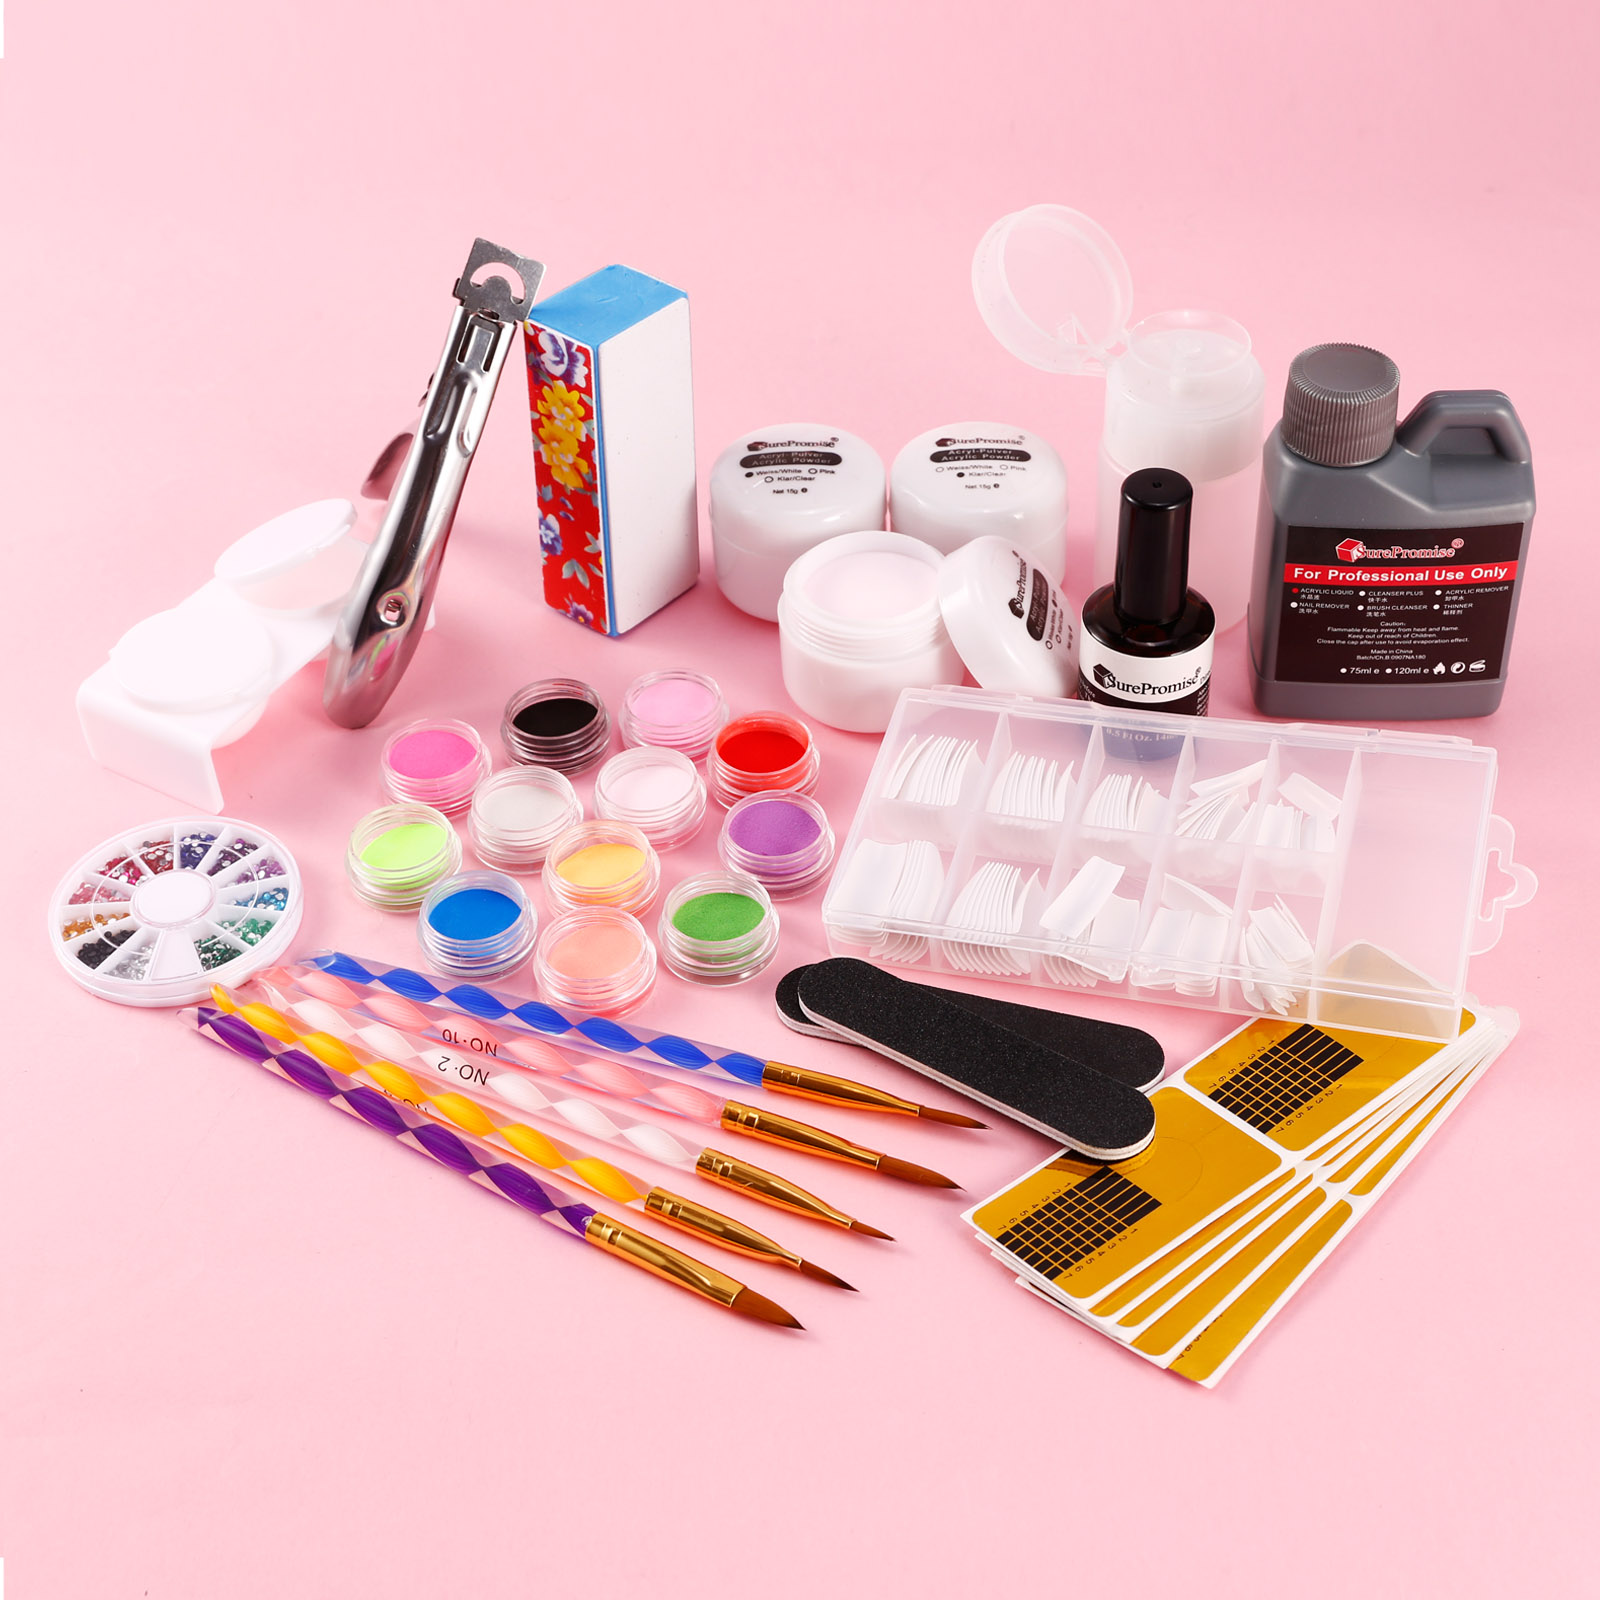 kit manucure extension ongles poudre acrylique resine liquide primer pinceaux ebay. Black Bedroom Furniture Sets. Home Design Ideas